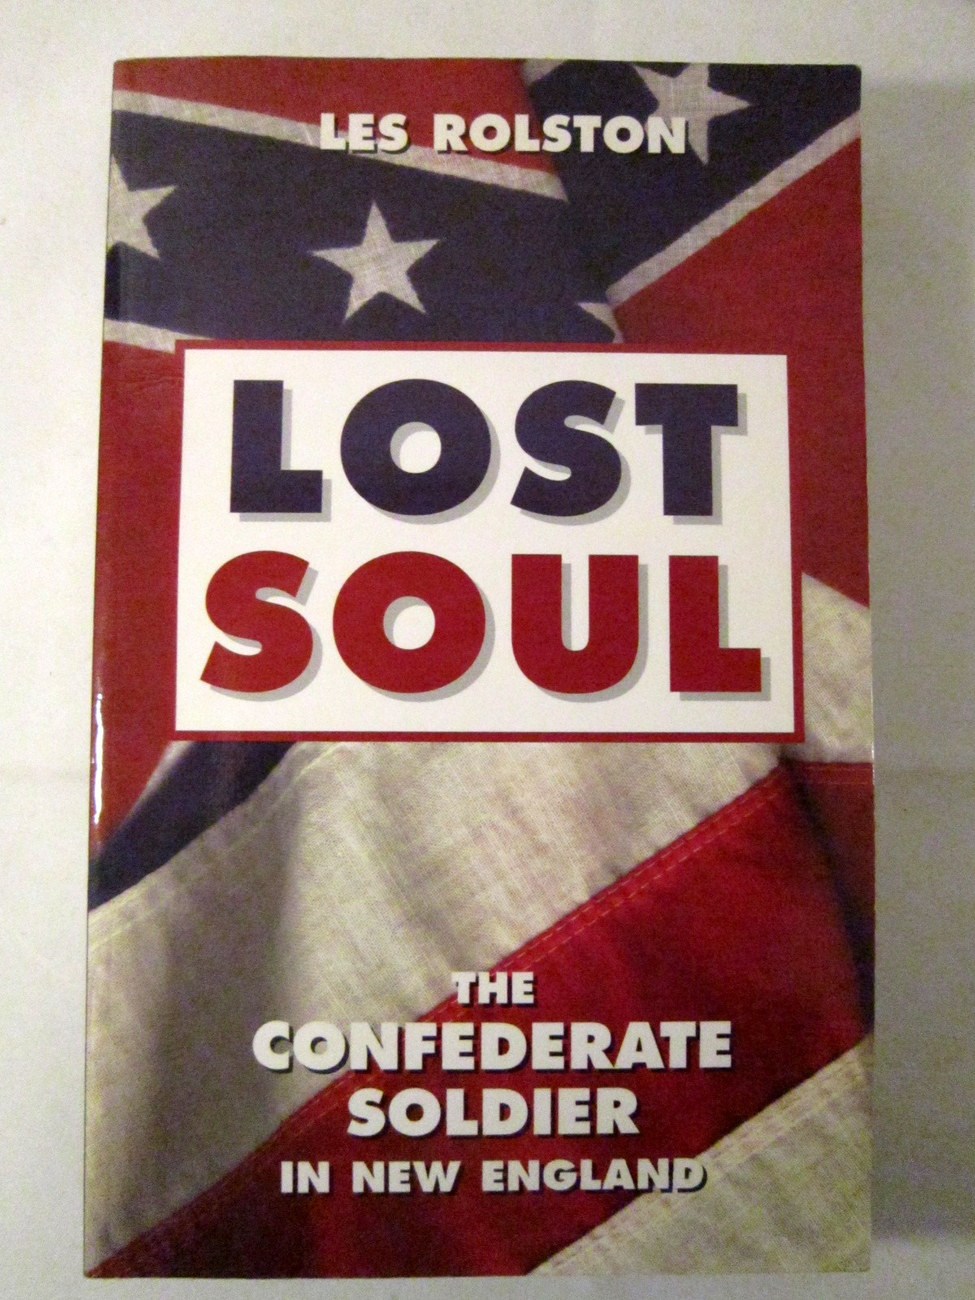 Primary image for Lost Soul Confederate Soldier in New England 1999 Les Rolston